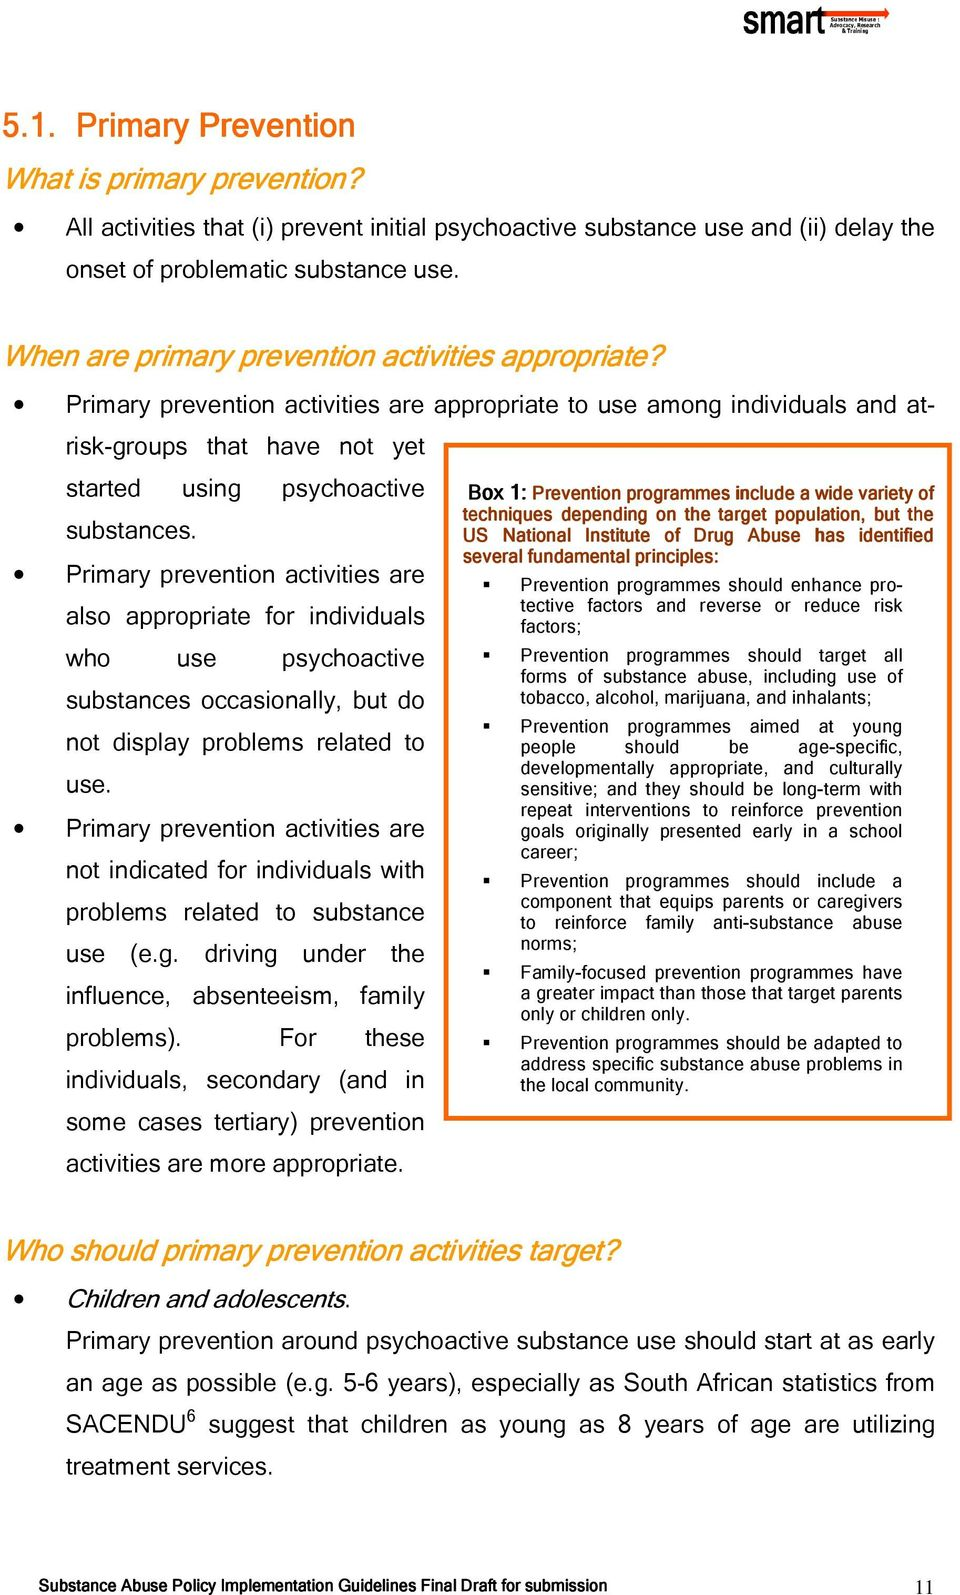 Primary prevention activities are also appropriate for individuals who use psychoactive substances occasionally, but do not display problems related to use.